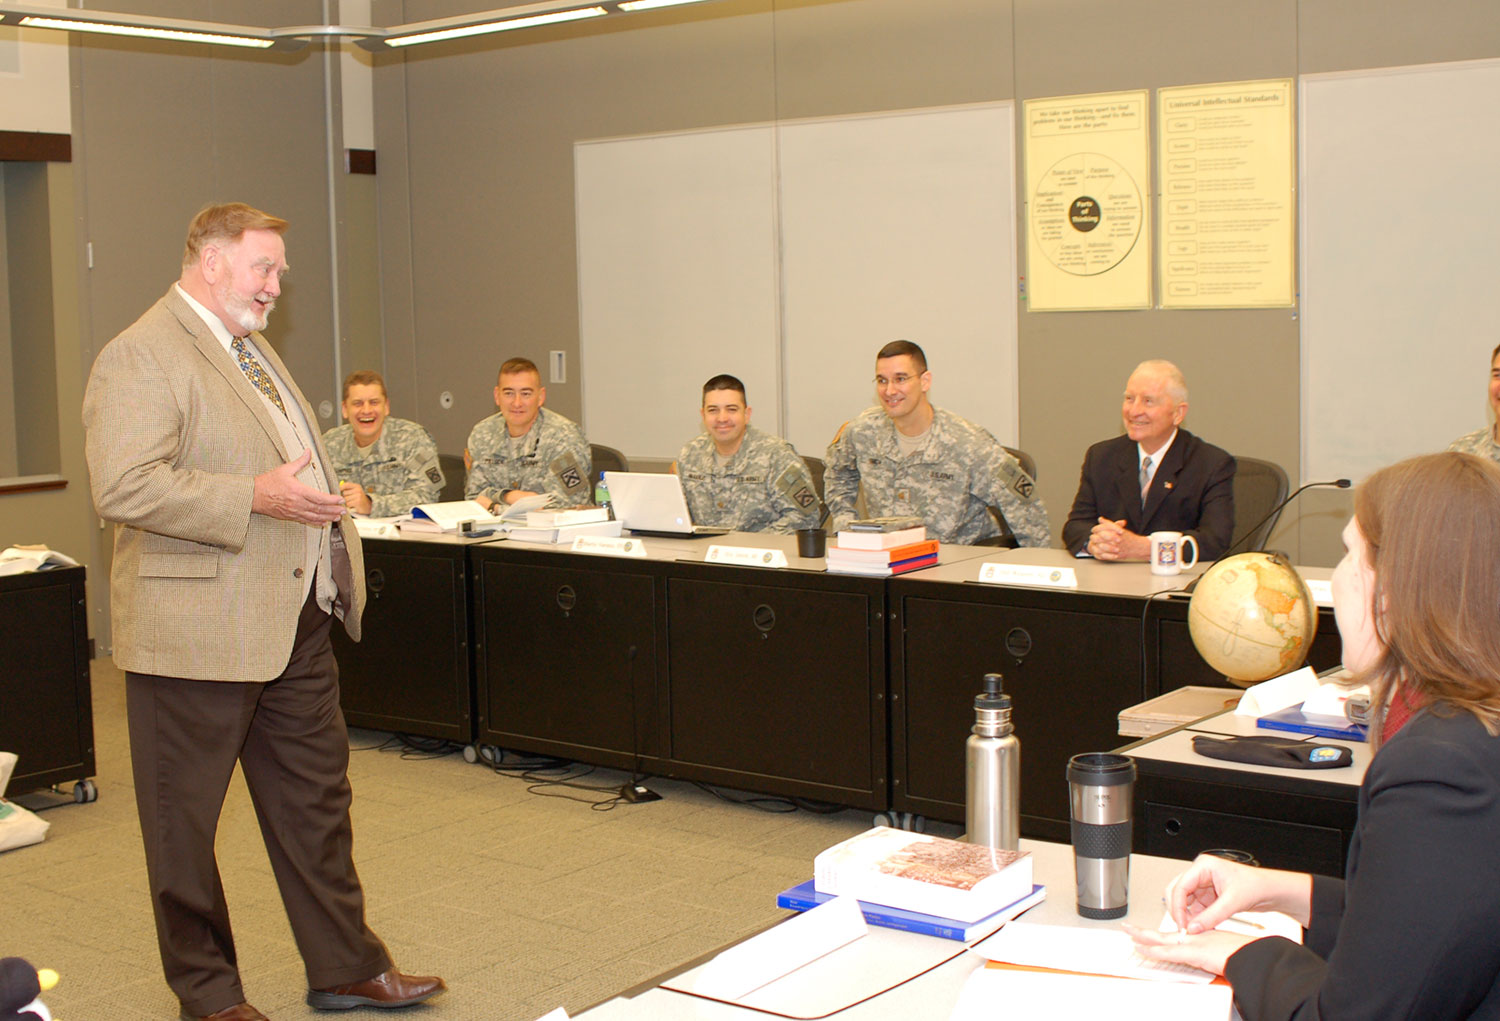 Ross Perot, seated right, participates in class discussion with CGSC Professor Bud Meador and students, during his visit to the College, Oct. 20, 2009.